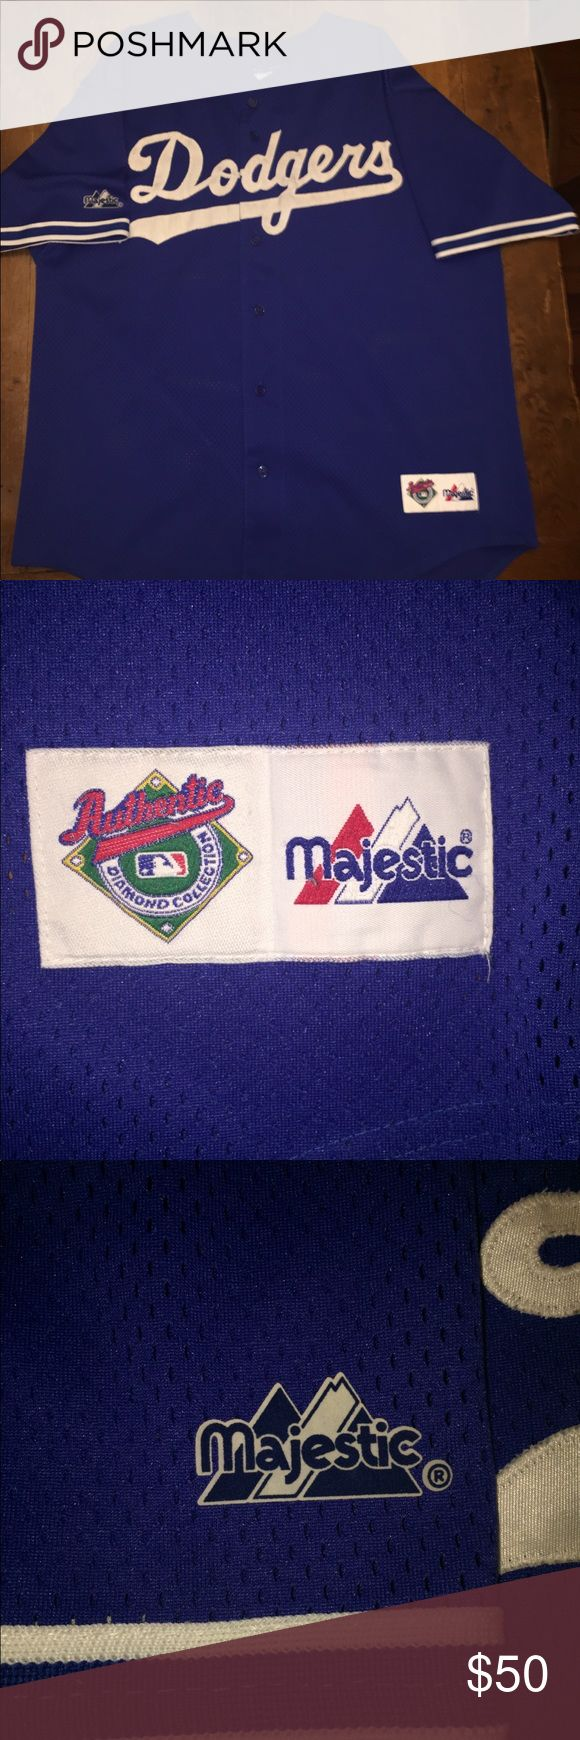 Vintage Major League Baseball Dodgers jersey In decent condition small holes on sleeve Majestic Shirts Tees - Short Sleeve